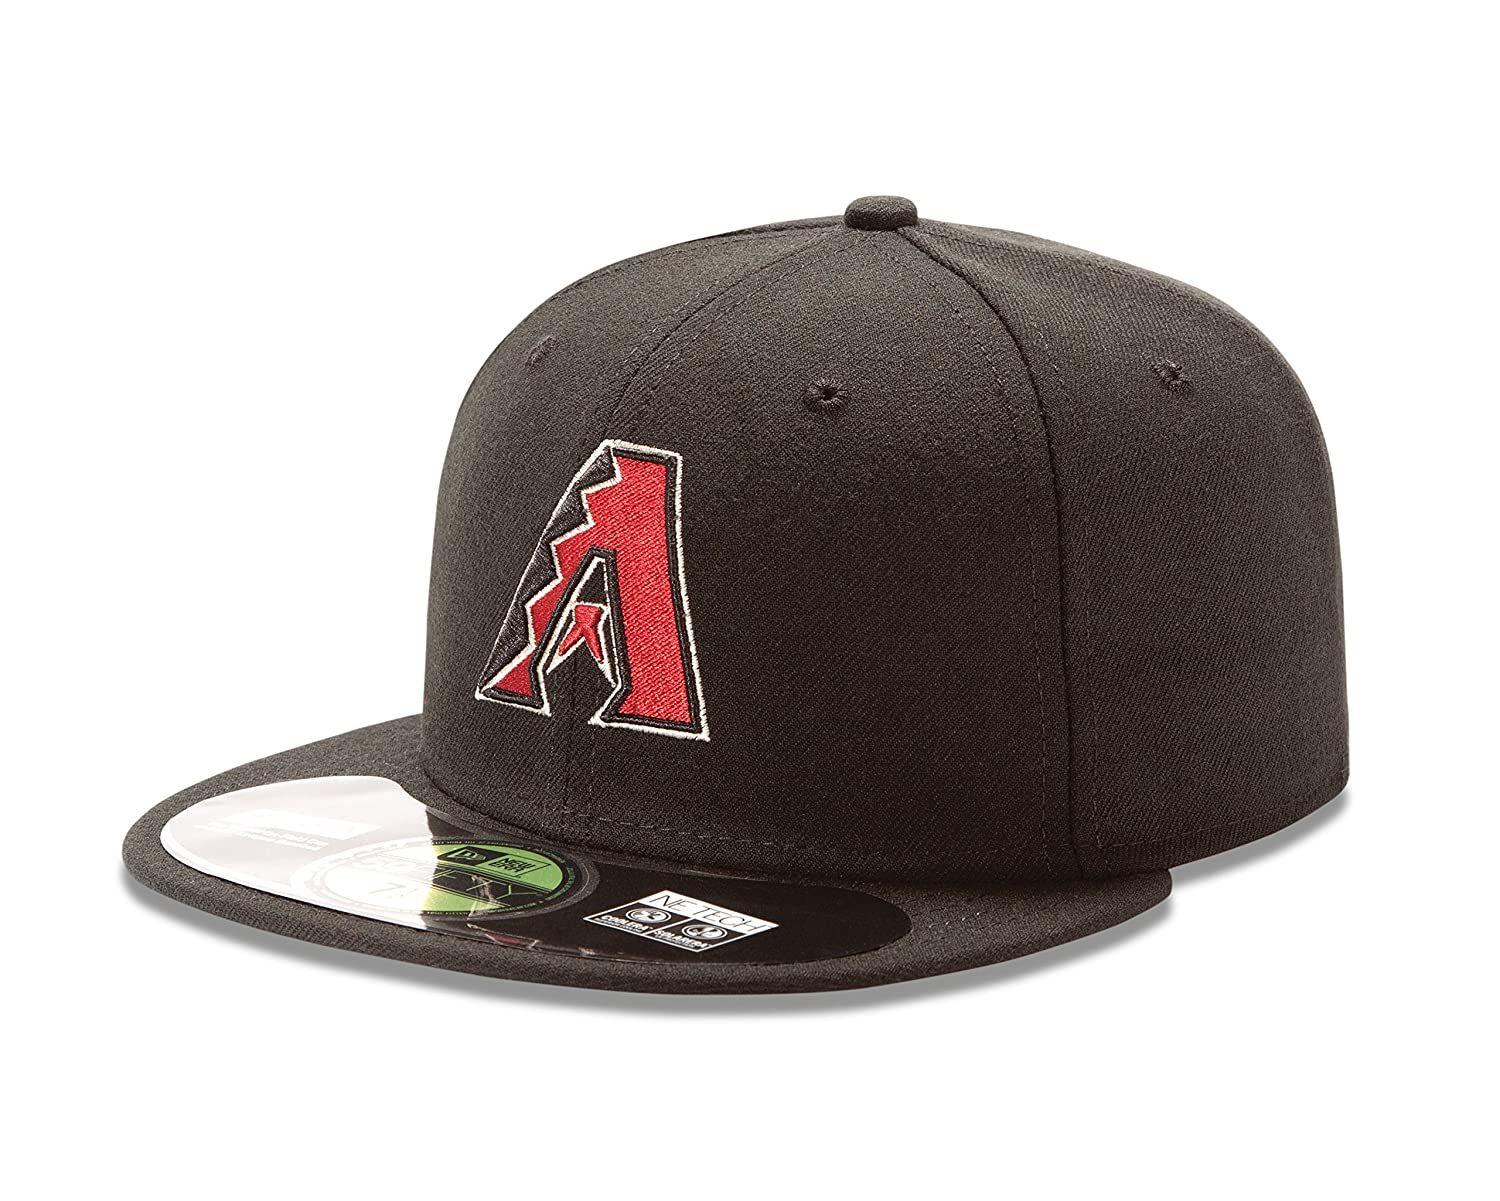 ea80611175b9f Amazon.com   New Era MLB Game Authentic Collection On Field 59FIFTY Fitted  Cap   Sports   Outdoors